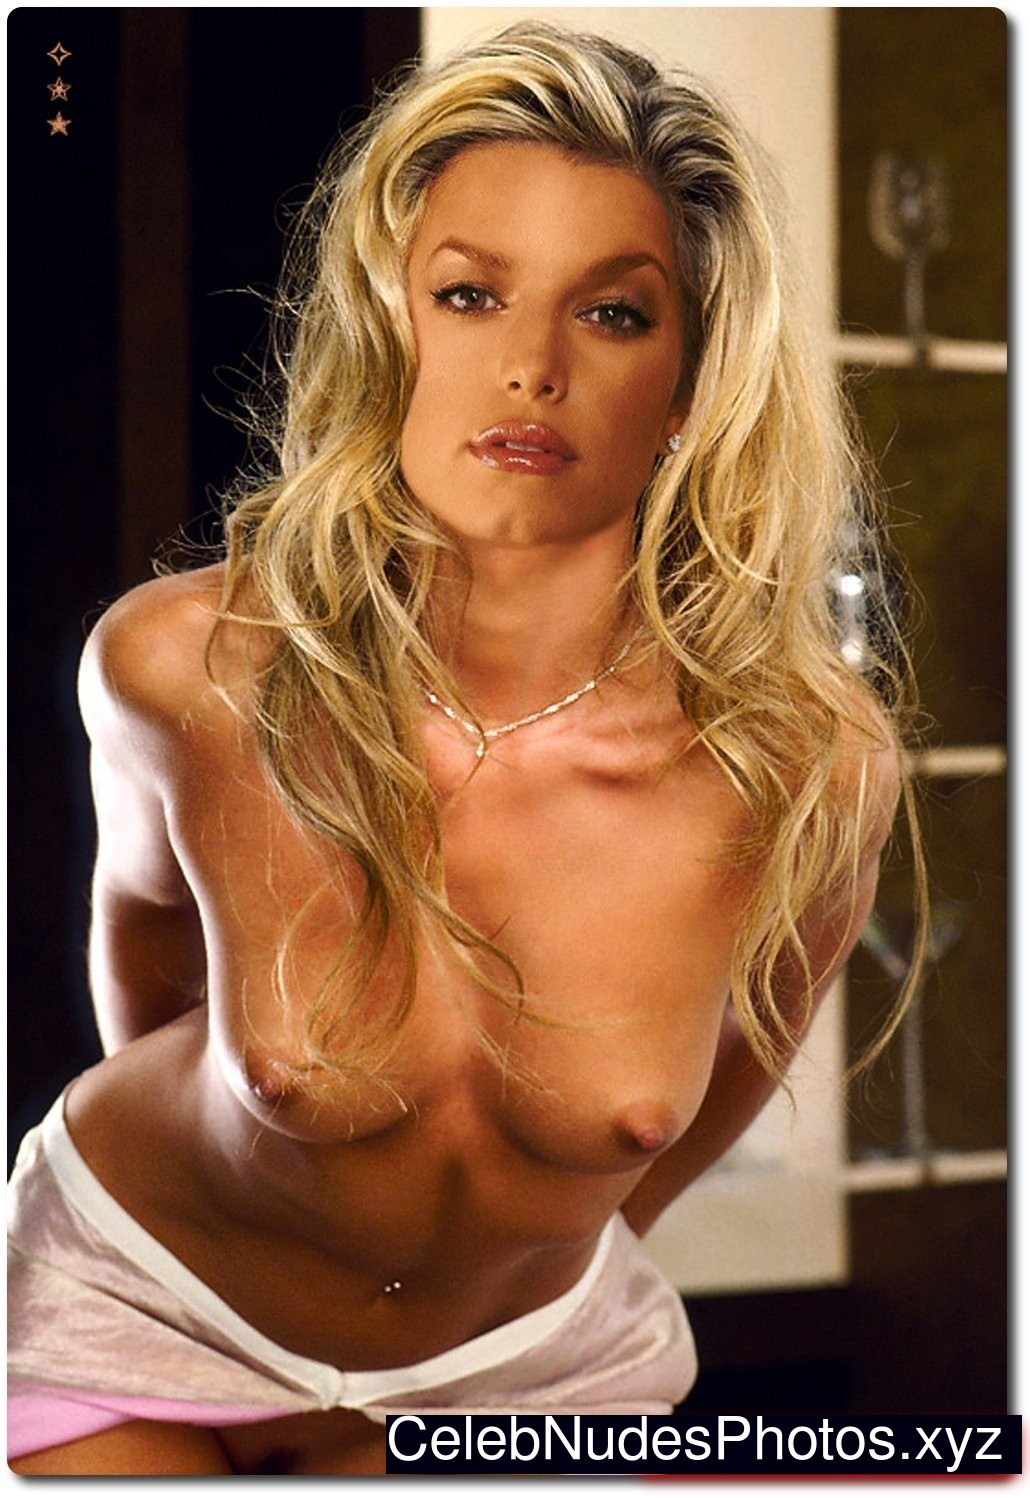 nude pictures of jessica simpson